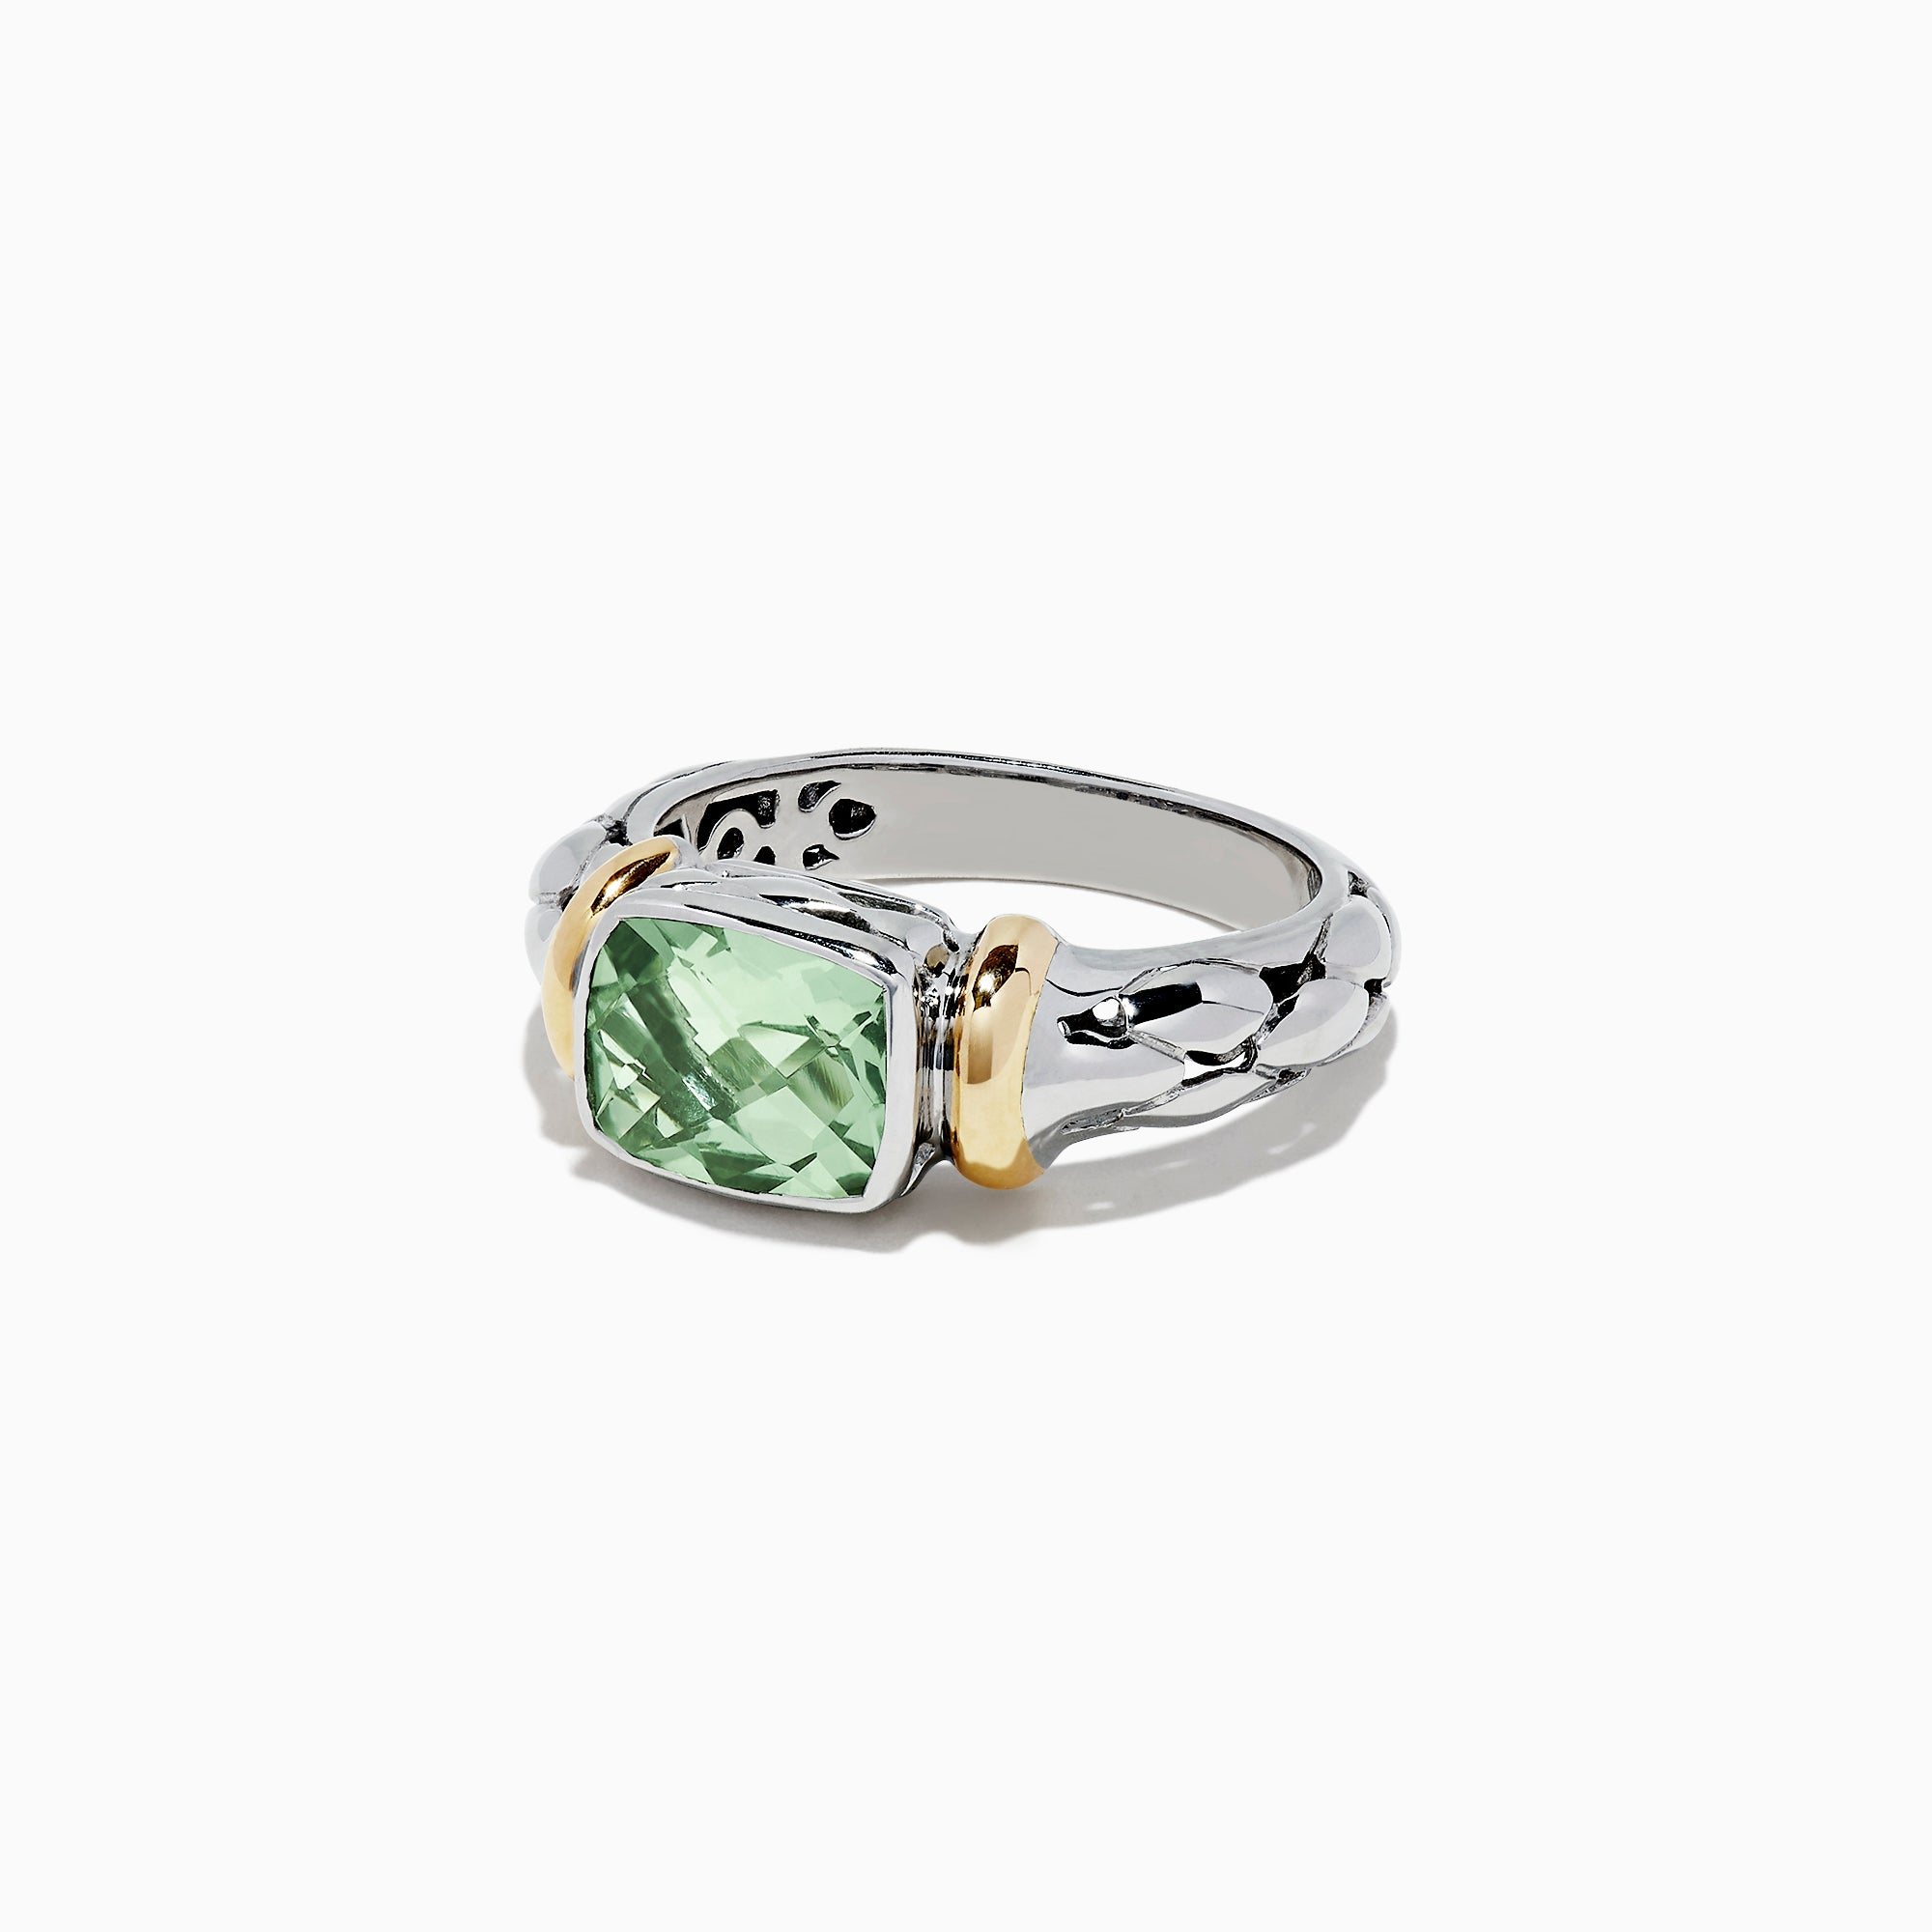 Effy 925 Sterling Silver and 18K Gold Green Amethyst Ring, 1.75 TCW